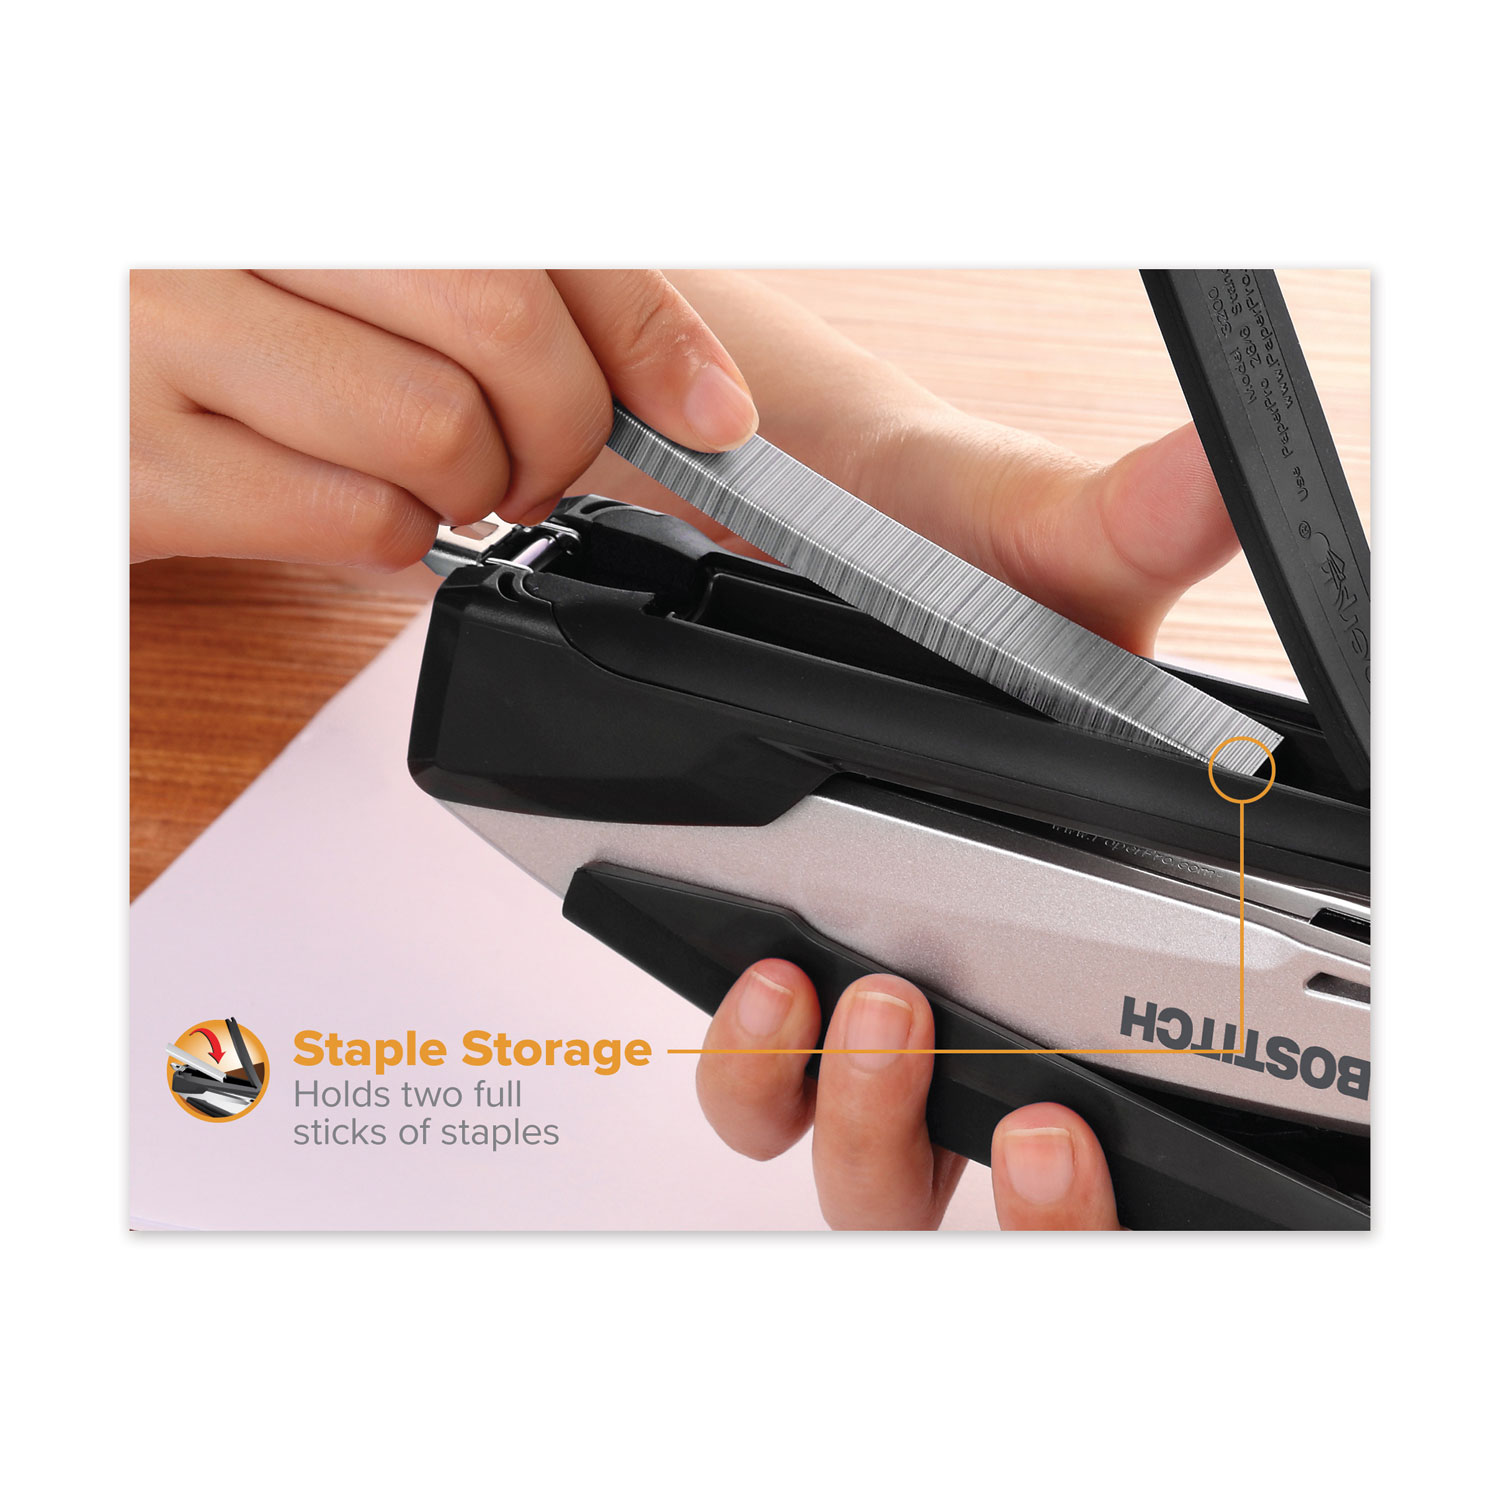 InPower Spring-Powered Premium Desktop Stapler 28-Sheet Capacity Black//Gray